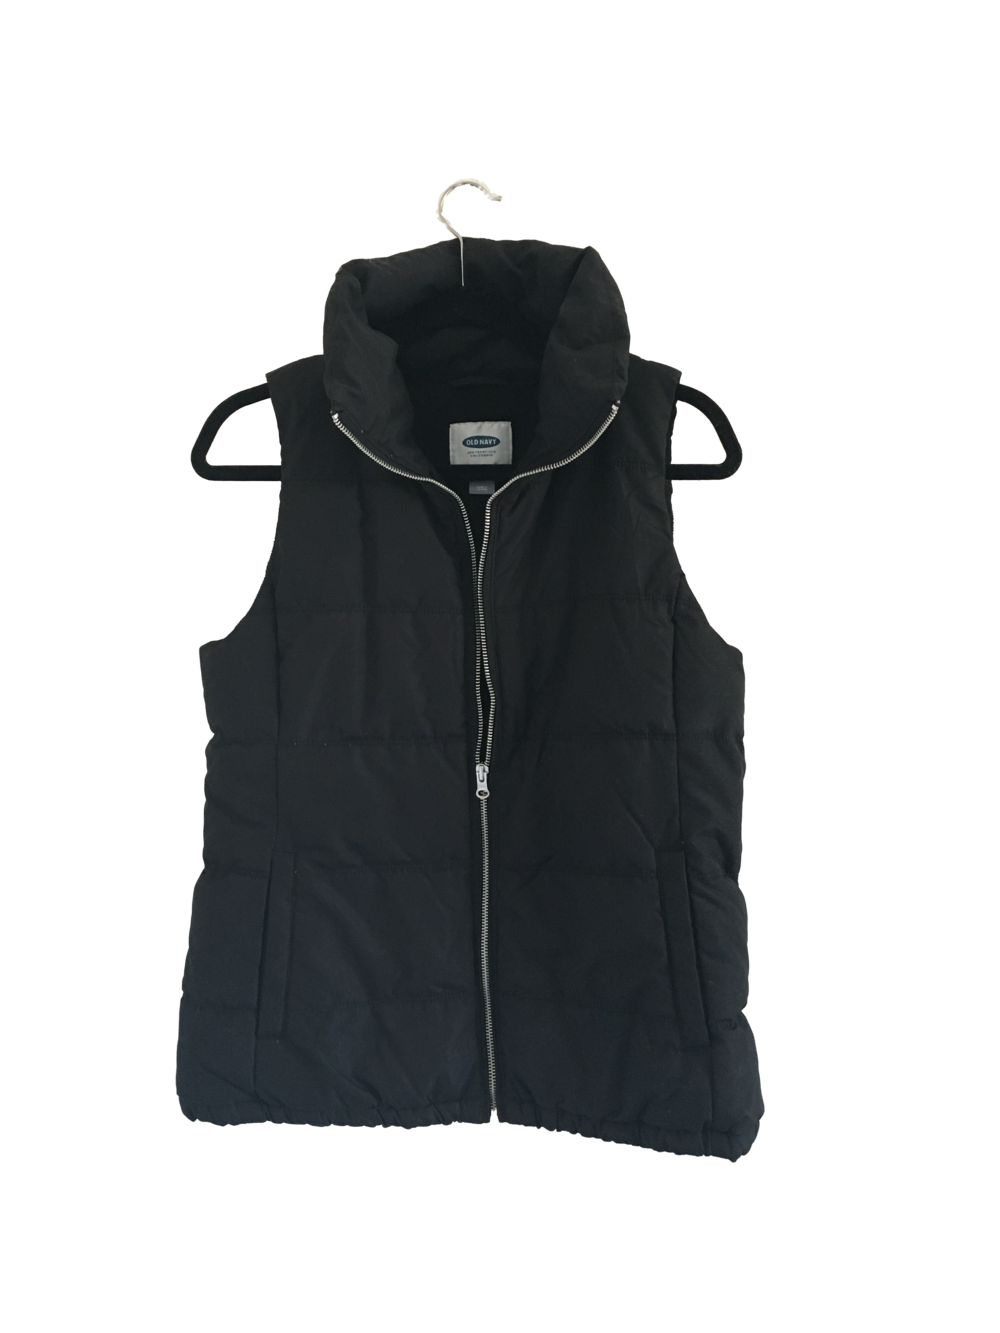 Puffy Vest.png